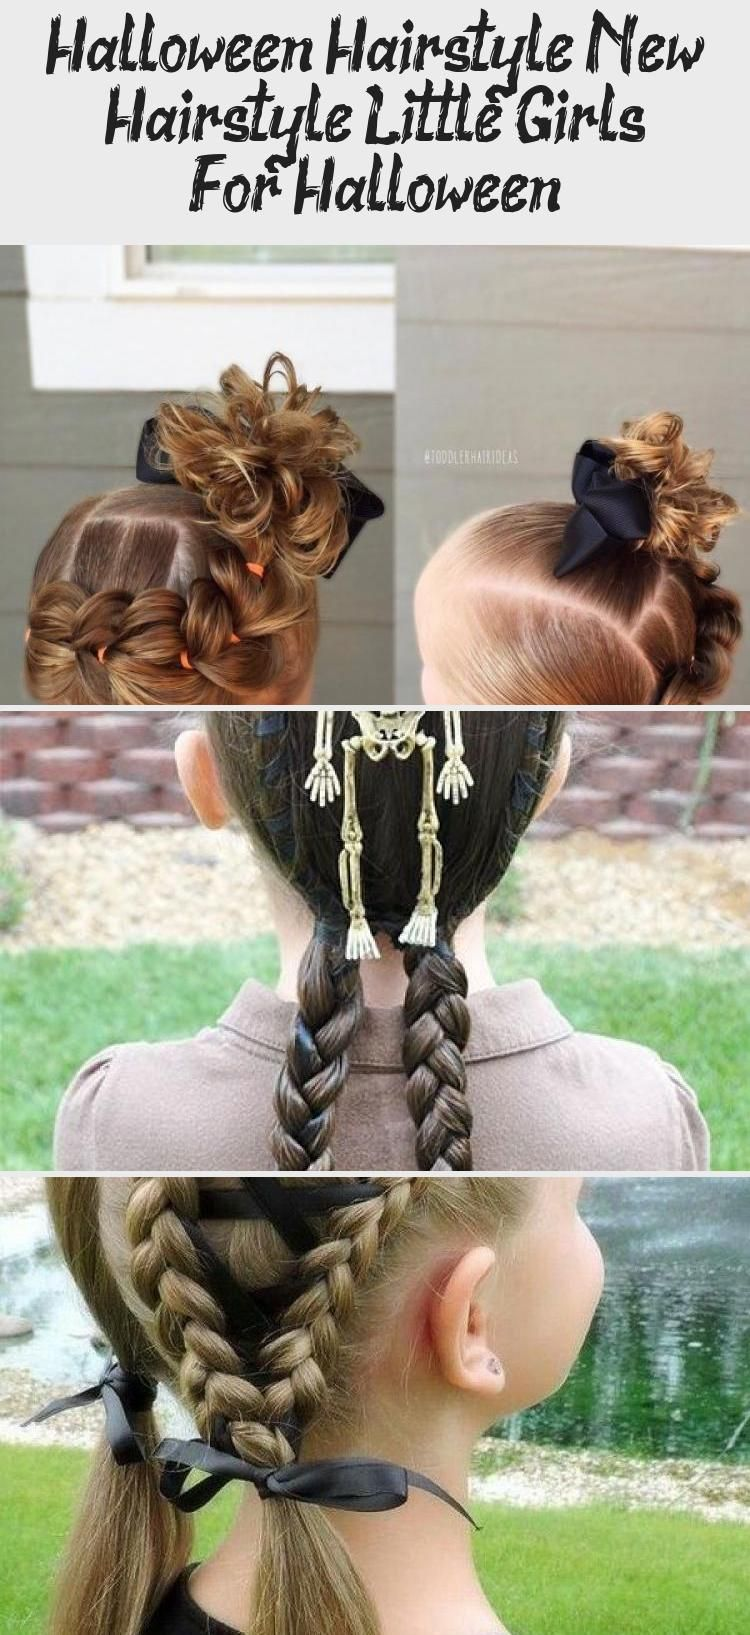 Halloween Hairstyle New: Hairstyle Little Girls For Halloween in